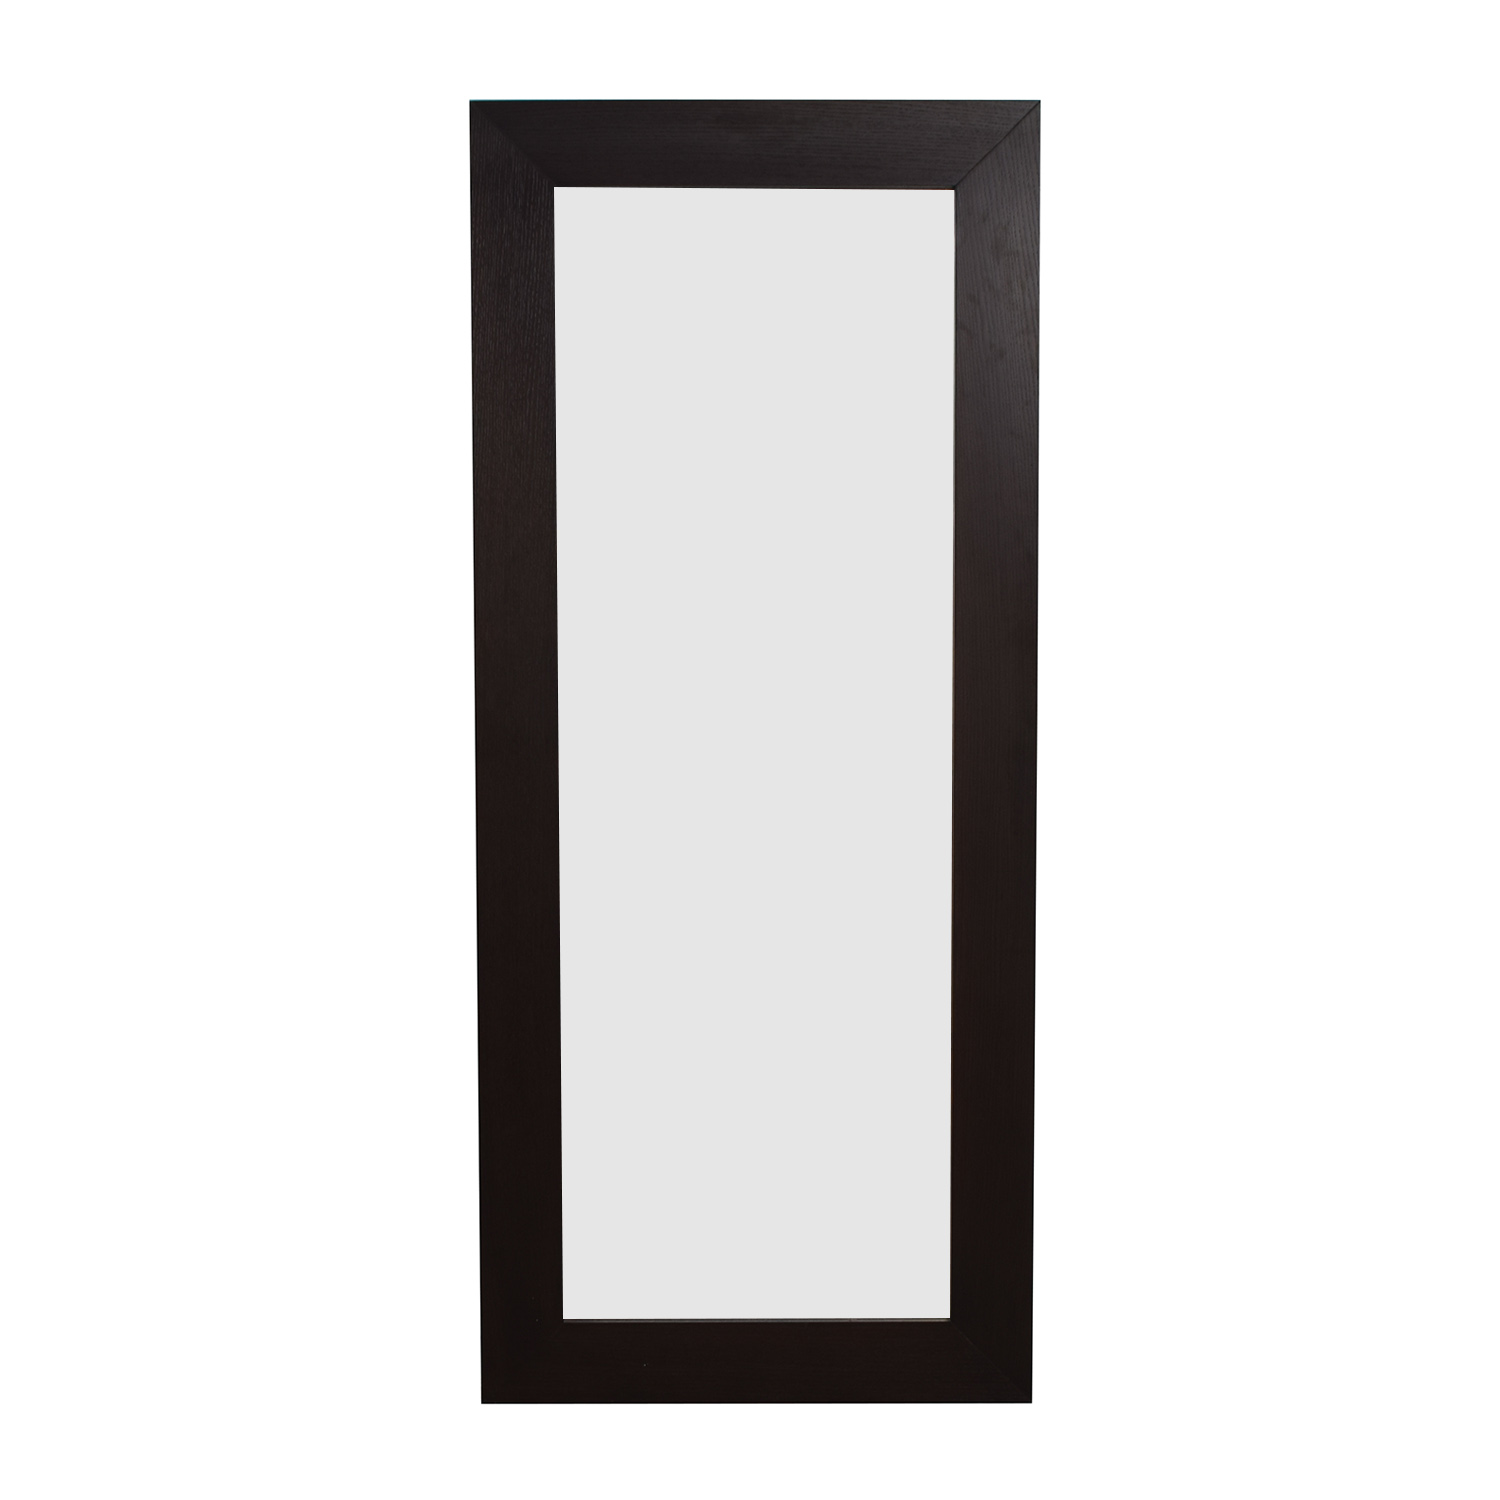 Wood Framed Floor Mirror dimensions